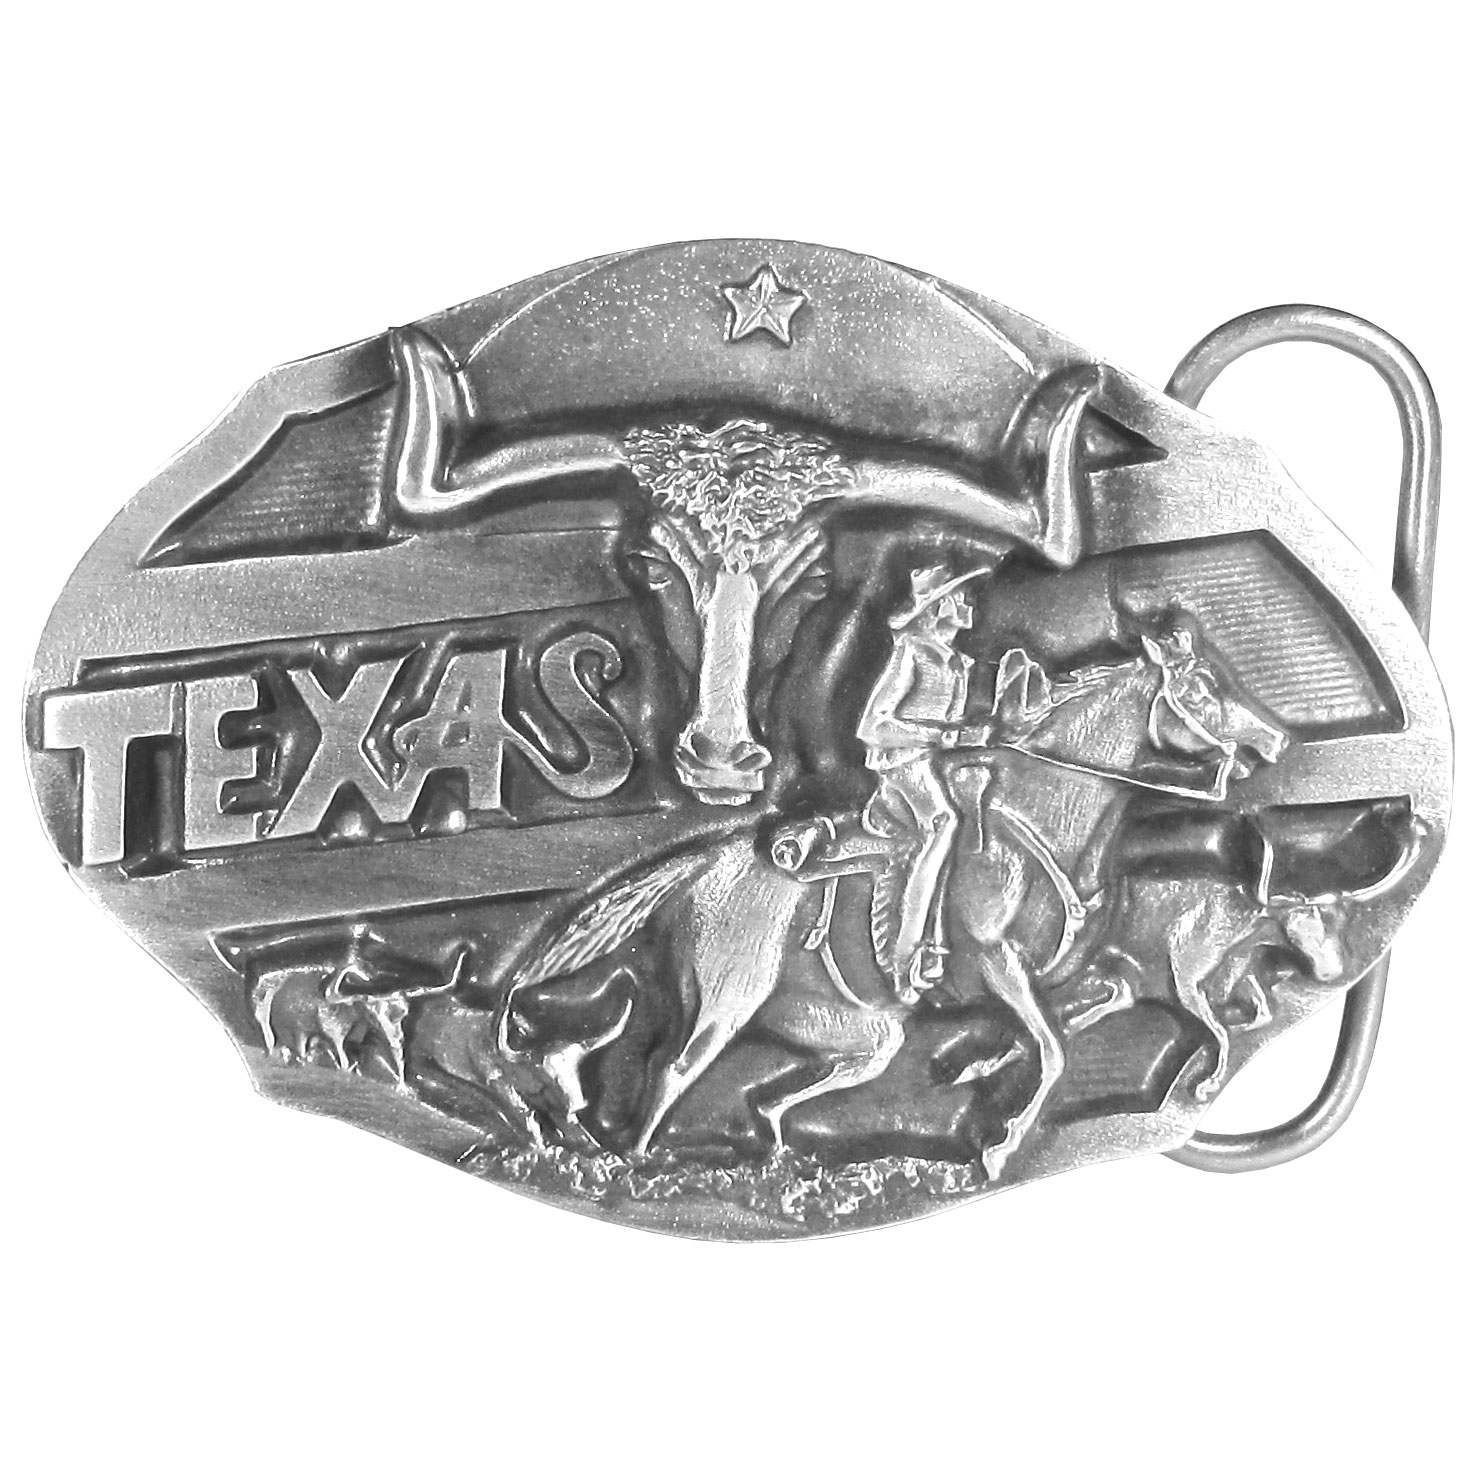 Texas Longhorn Antiqued Belt Buckle - Finely sculpted and intricately designed belt buckle. Our unique designs often become collector's items.